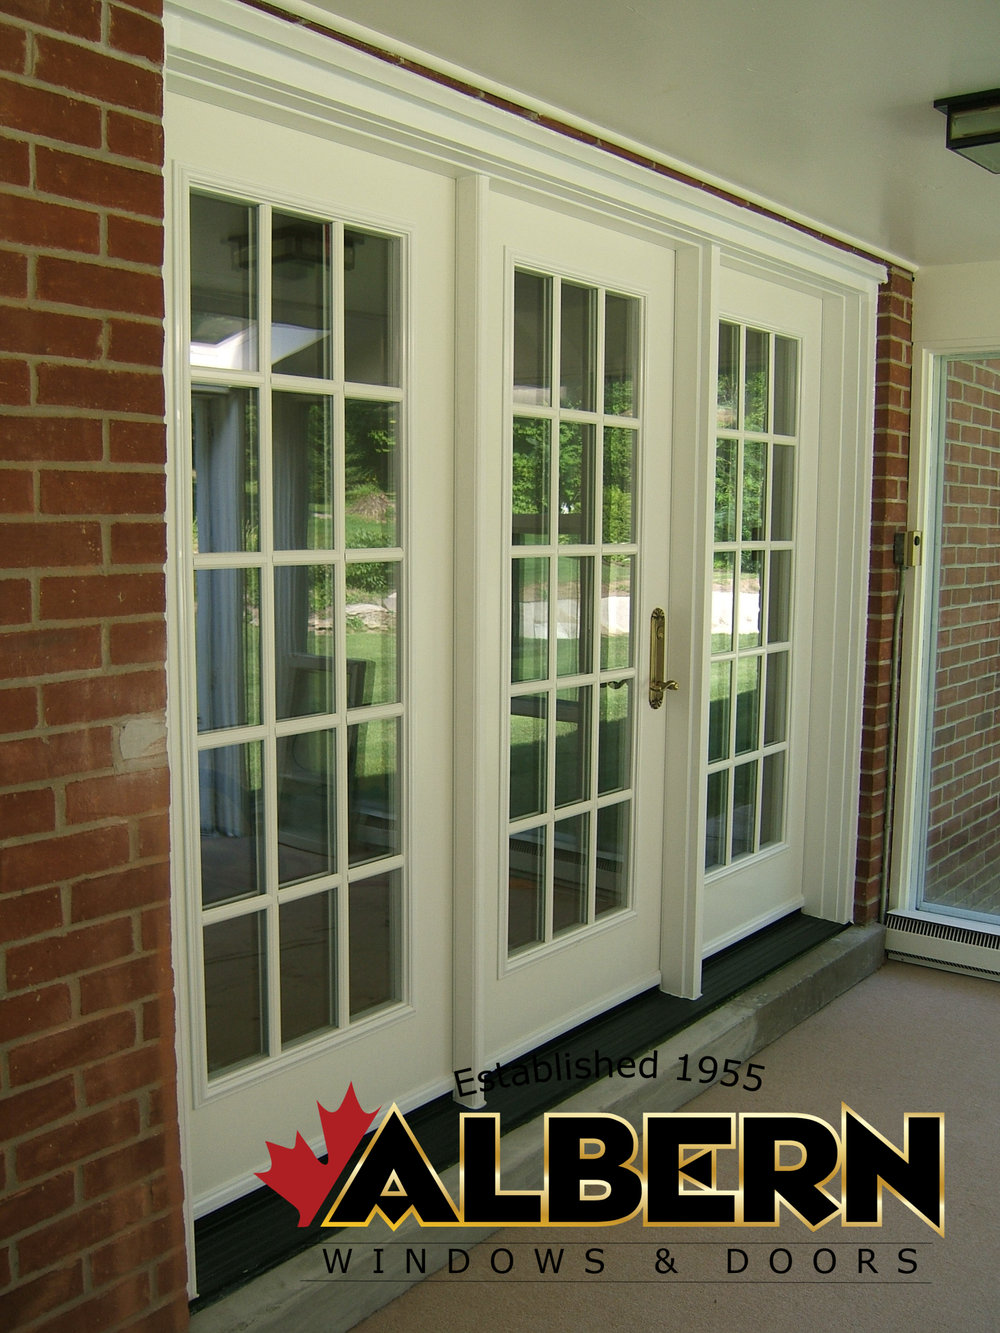 Albern Windows and Doors (26).jpg